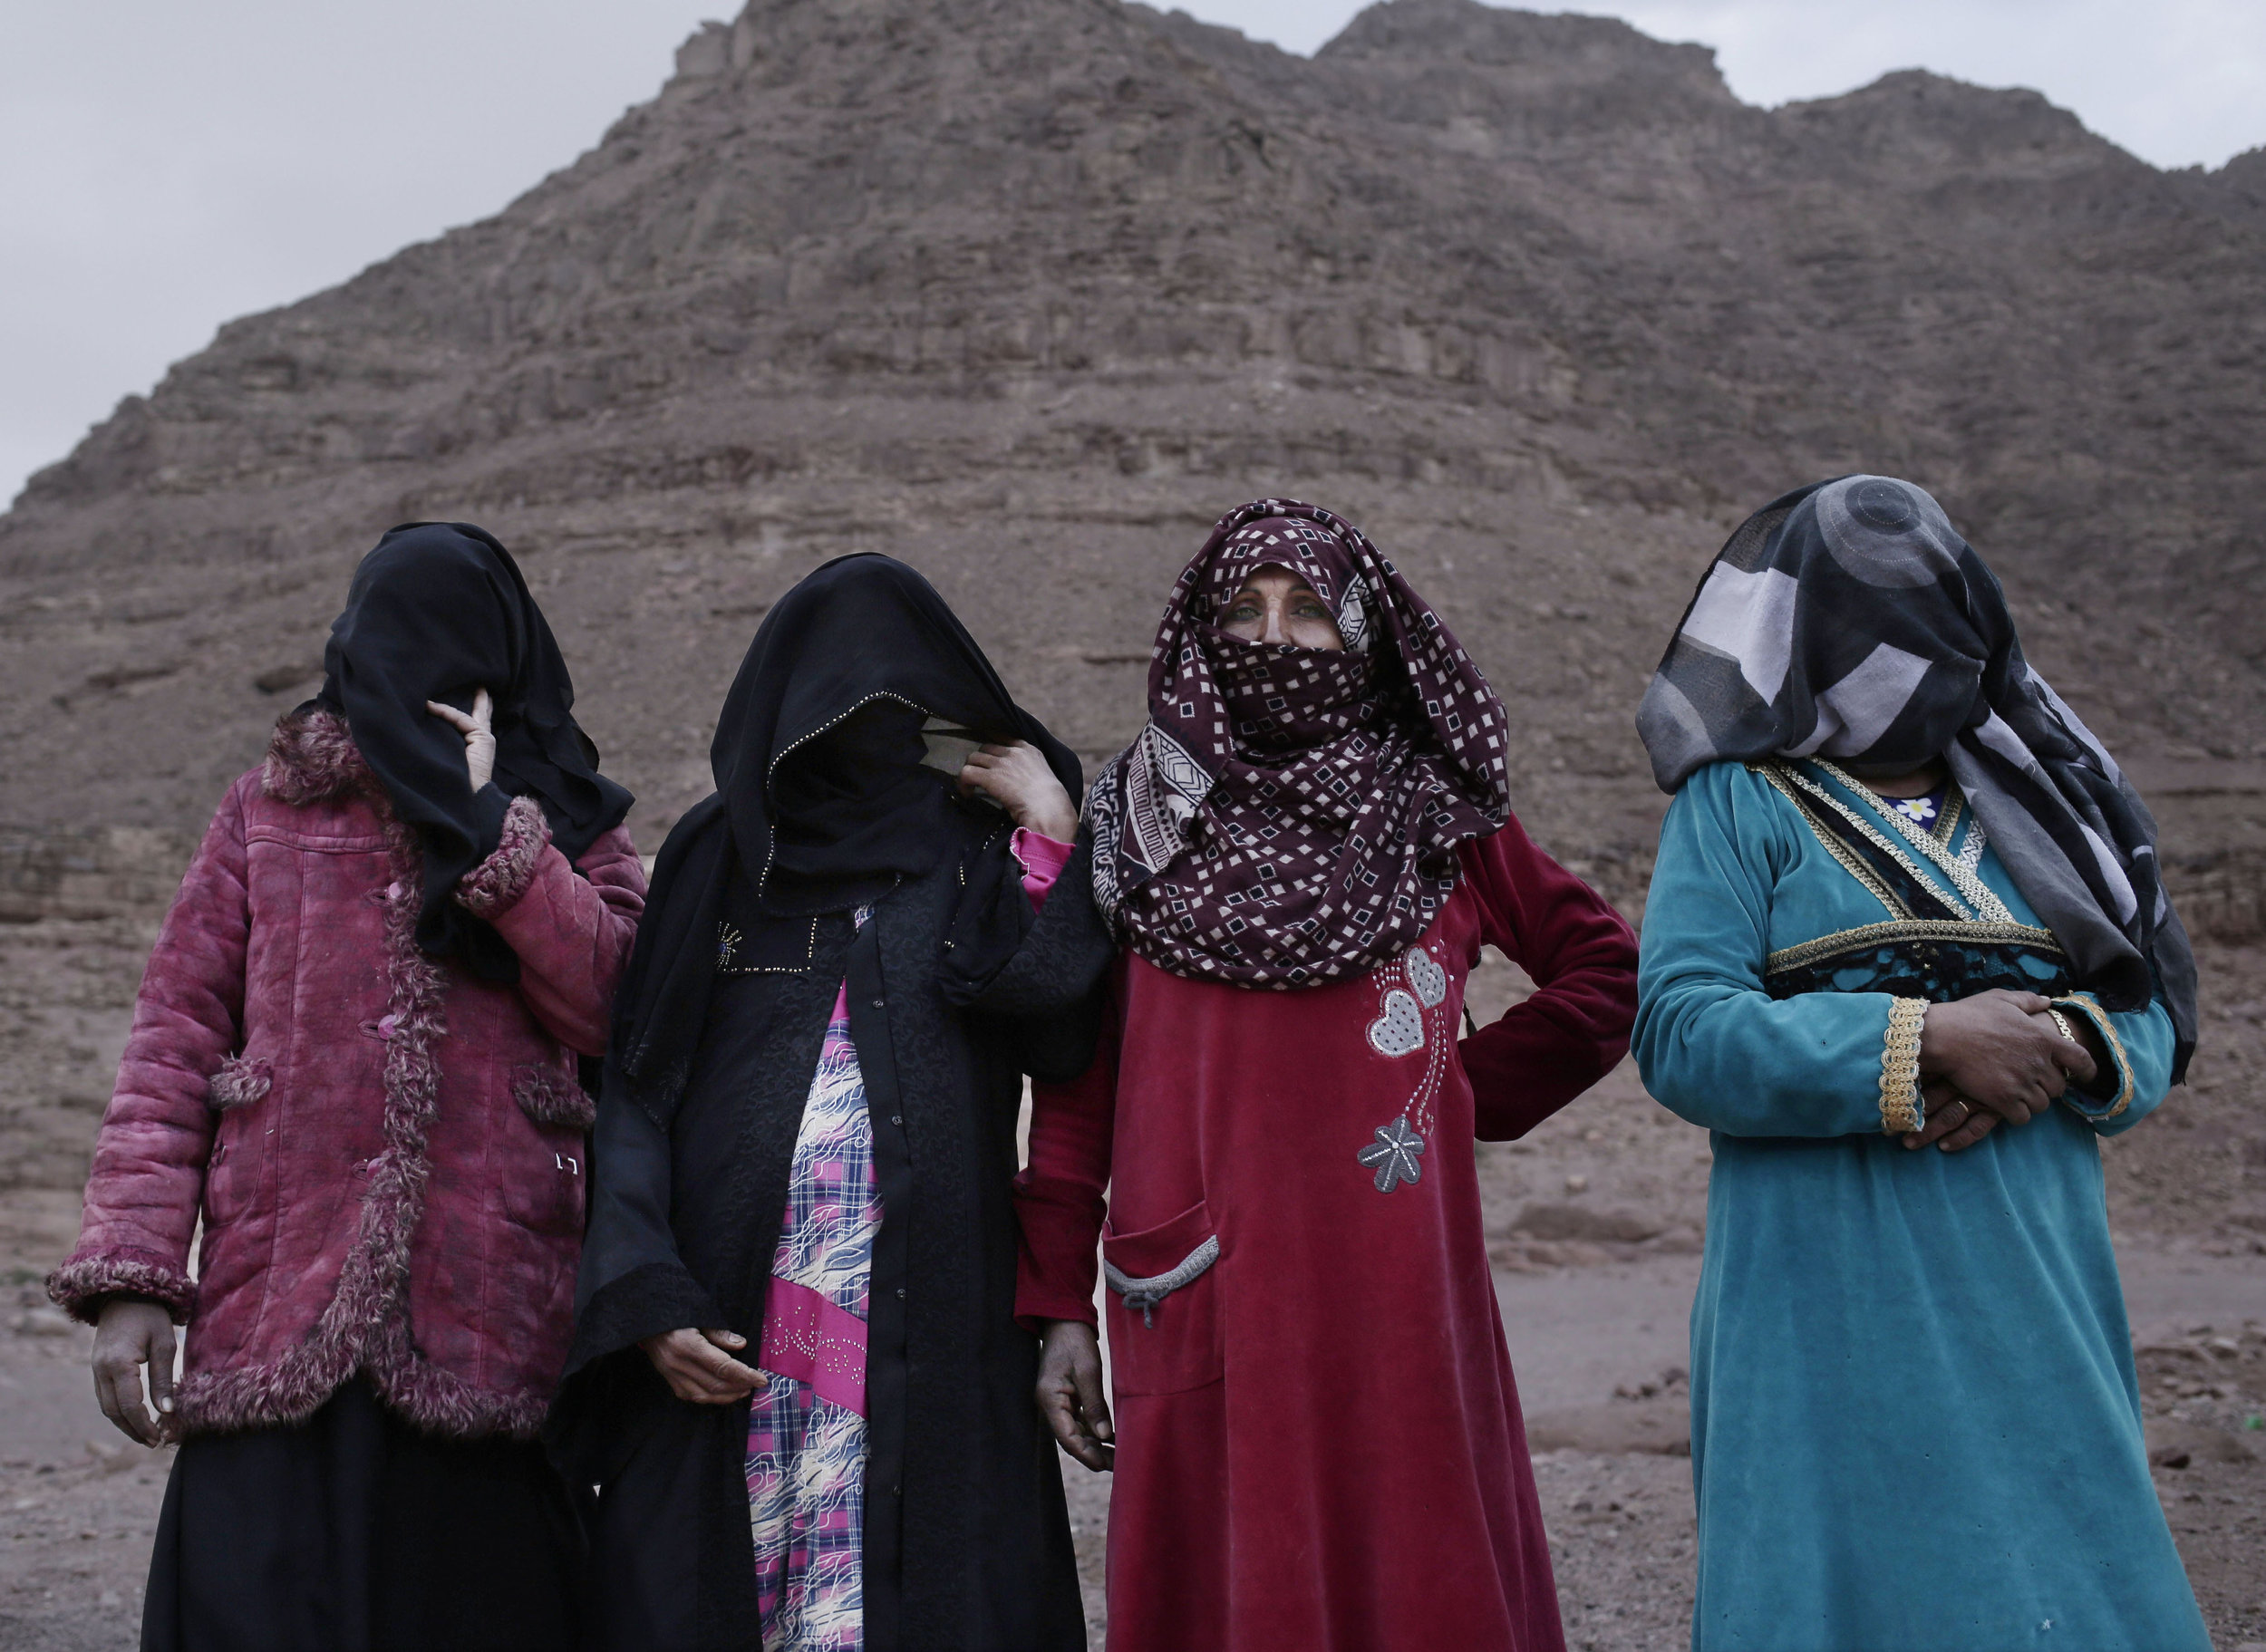 The first female Bedouin guides, from right, Selima, Umm Yasser, Umm Soliman, and Aicha, pose for a photograph in Wadi Sahw, Abu Zenima, in South Sinai, Egypt. on March 30, 2019. (AP Photo/Nariman El-Mofty)